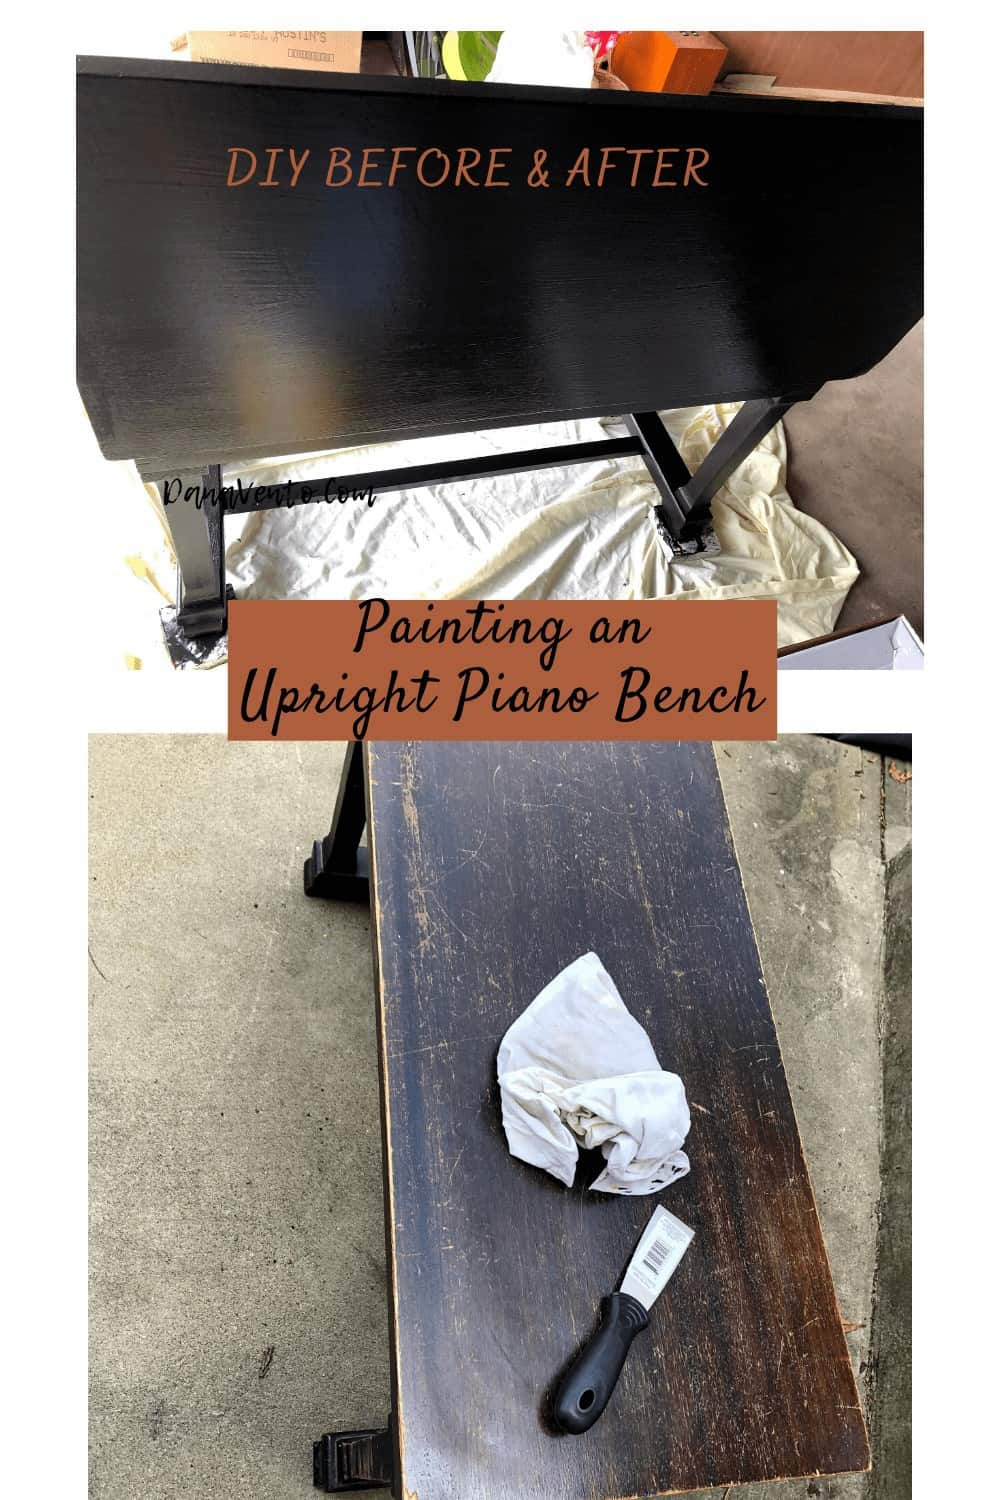 before and after of piano bench DIY